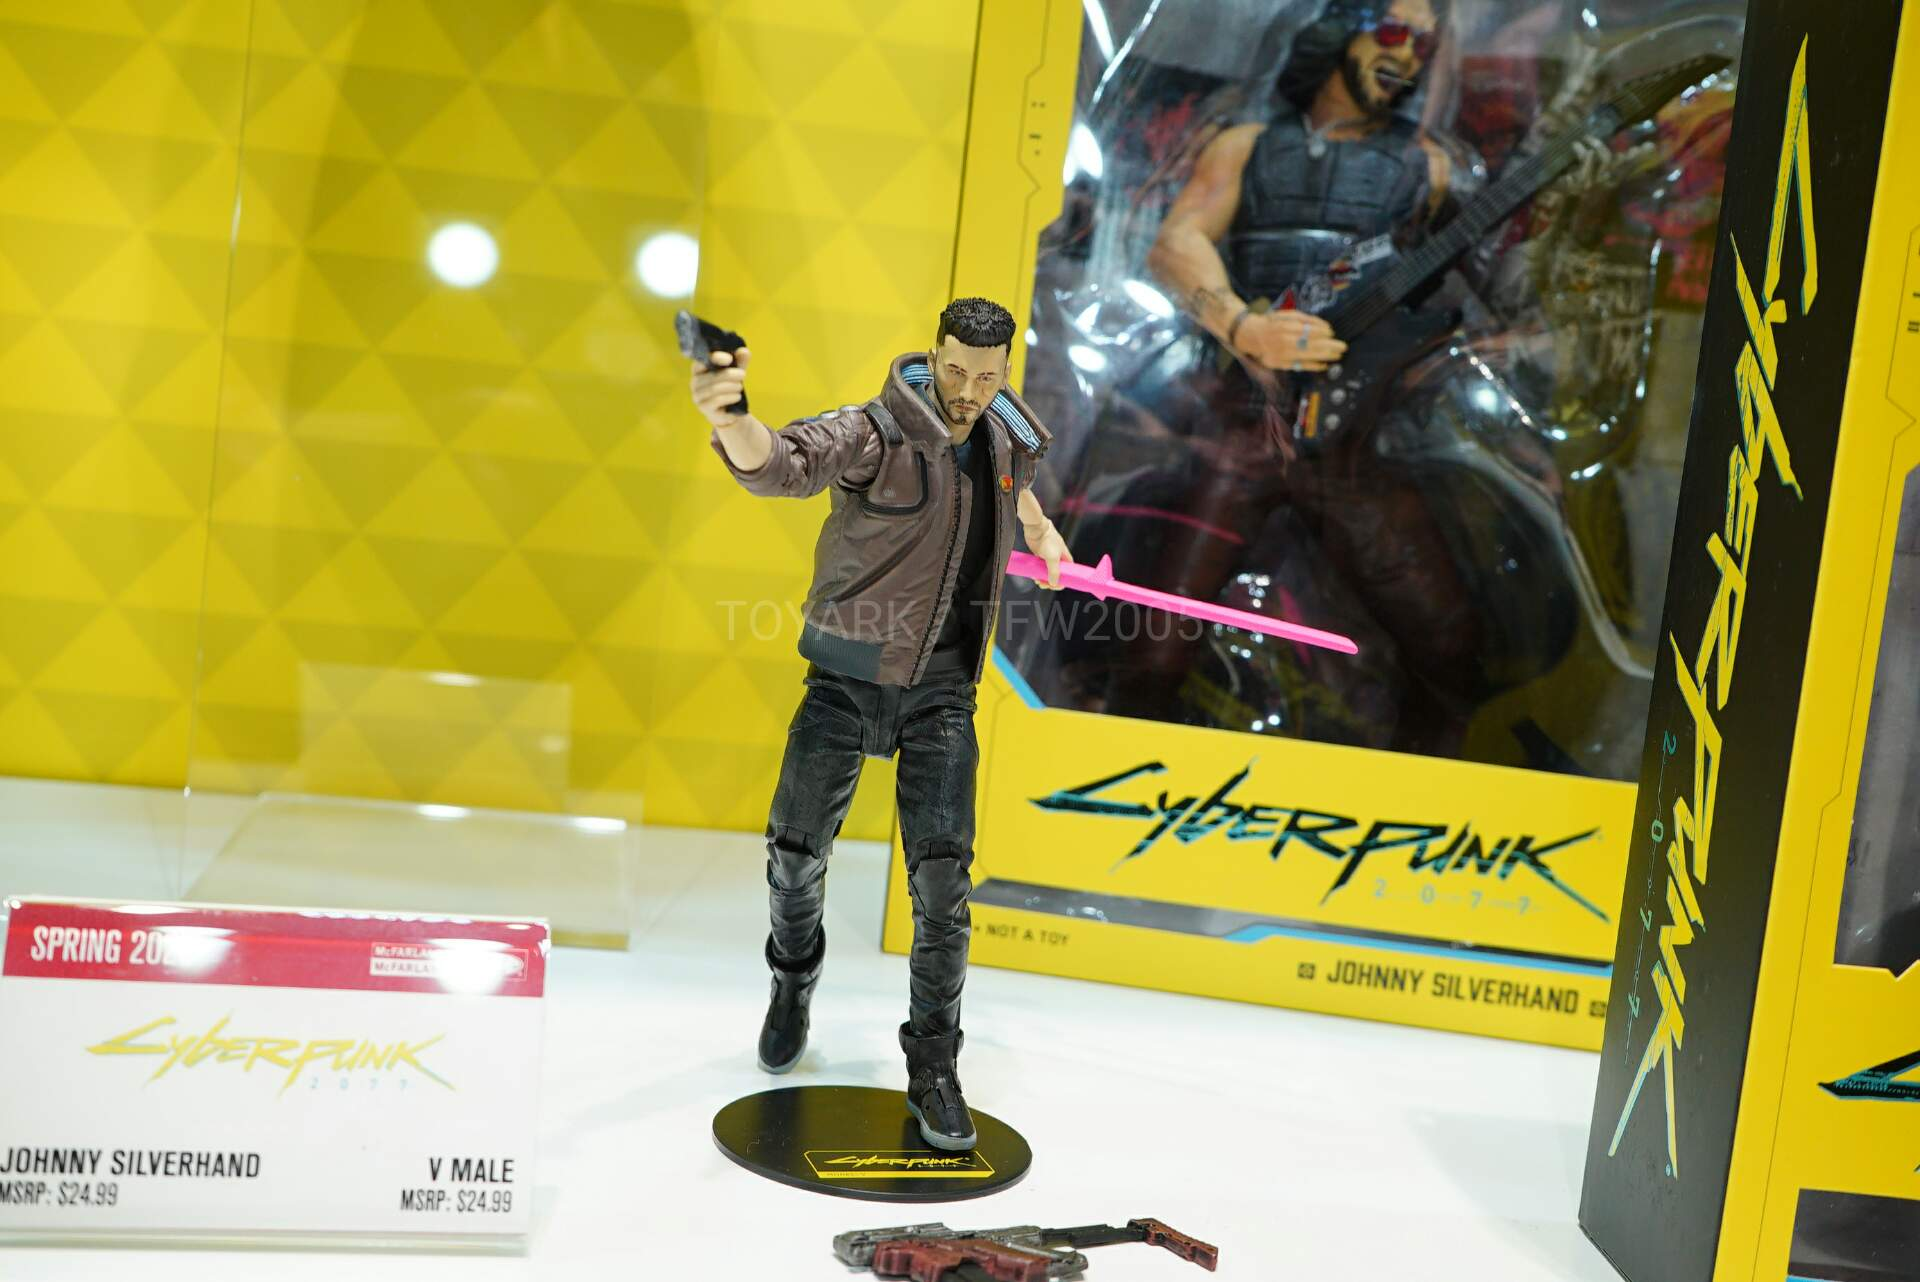 Toy-Fair-2020-McFarlane-Game-010.jpg